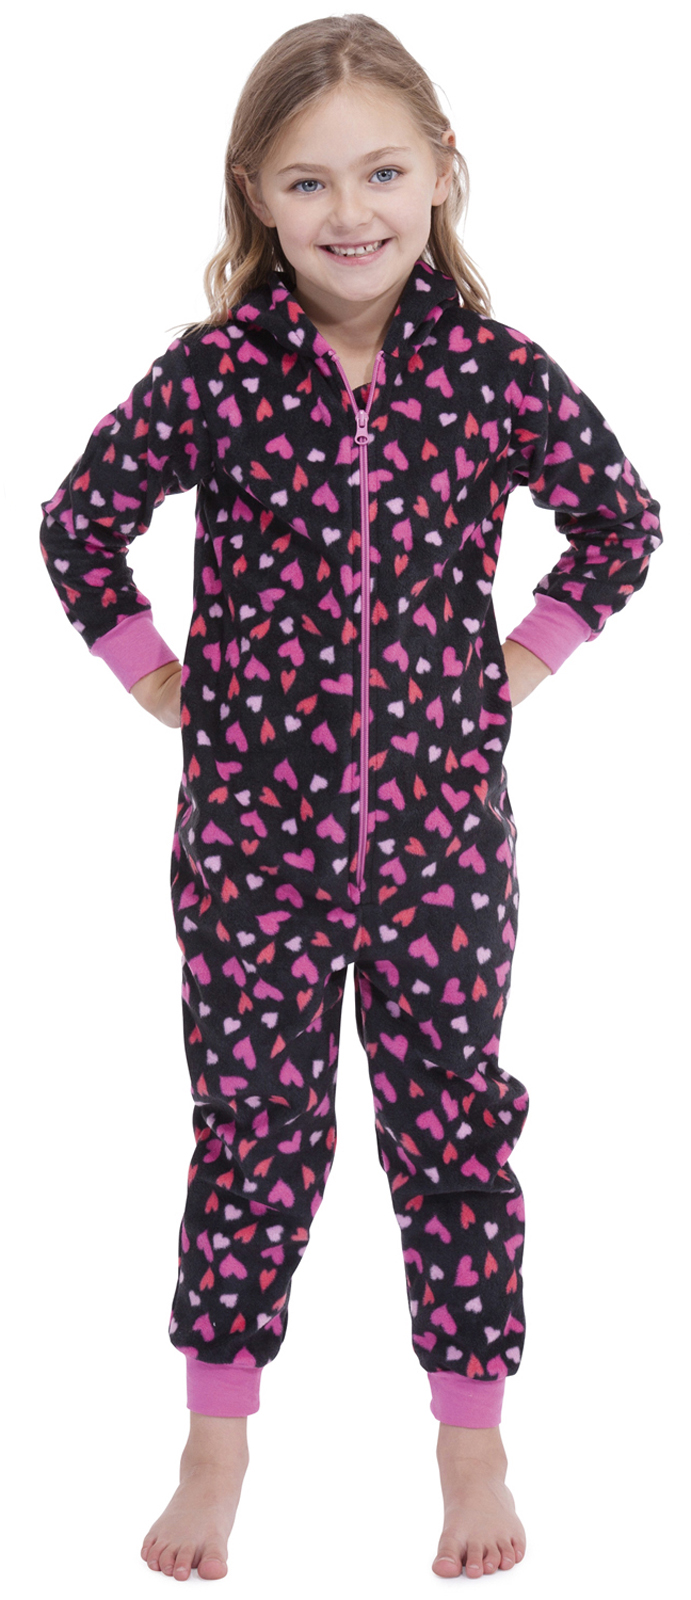 Onesie weather is here! This cool onesie feature a zip front, quirky print and super soft fleecy texture.